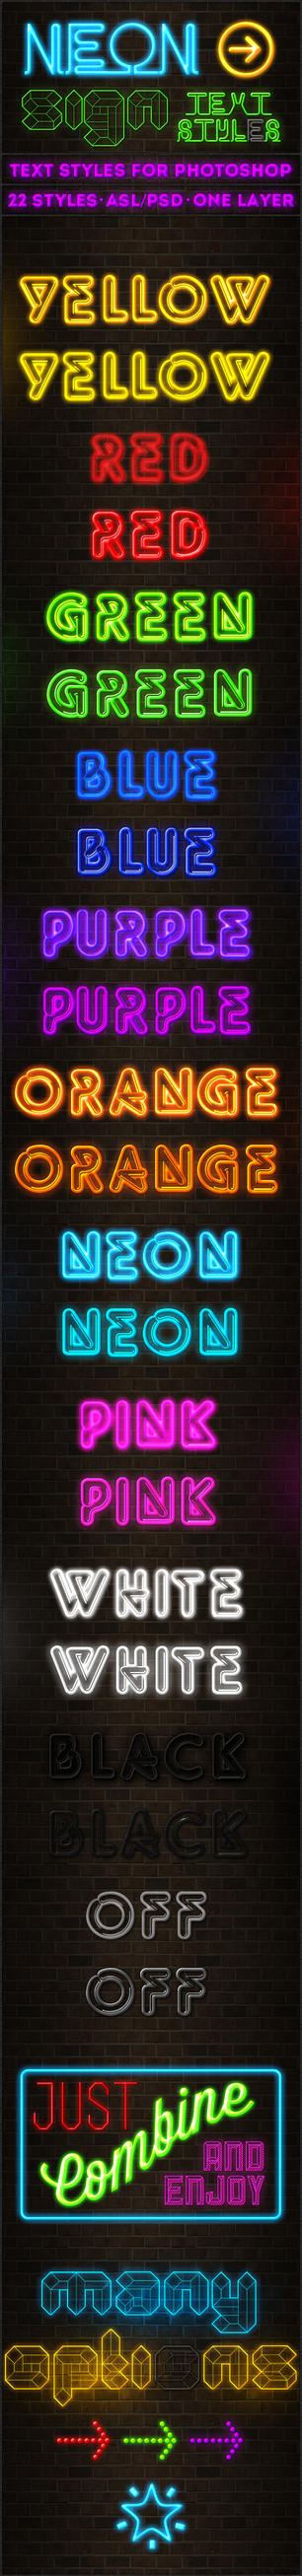 Neon Sign - Text Styles by ivelt